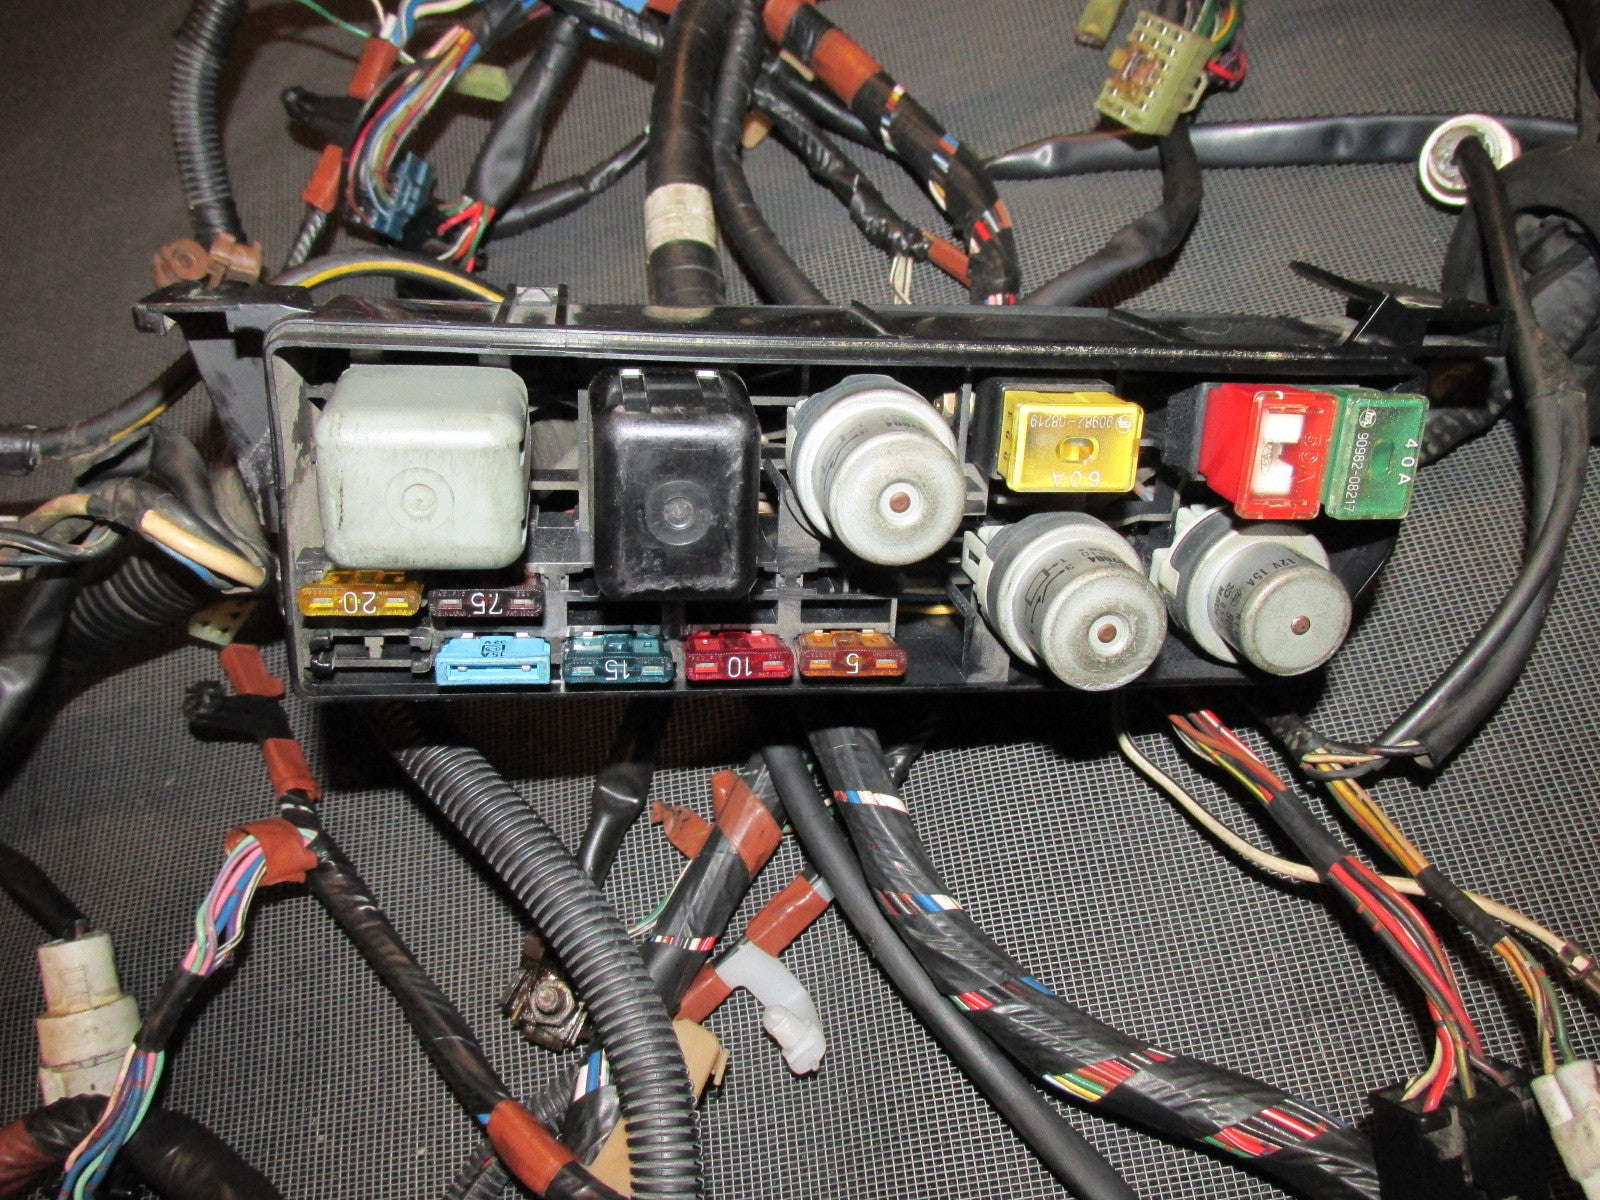 87 88 89 Toyota MR2 OEM Engine Fuse Box Wiring Harness - Tail Light Fuse Box Wiring Harness on fuse box assembly, power window switch wiring, fuse box components, fuse box safety, fuse box relays, ignition switch wiring, fuse box plug, fuse box electrical, fuse box mounts, fuse box connectors, fuse box terminals, fuse box speakers, fuse box electricity, fuse box transformer, fuse box dimensions, fuse box fuses, fuse box grounding, fuse box engine, fuse box repair, fuse switch box,